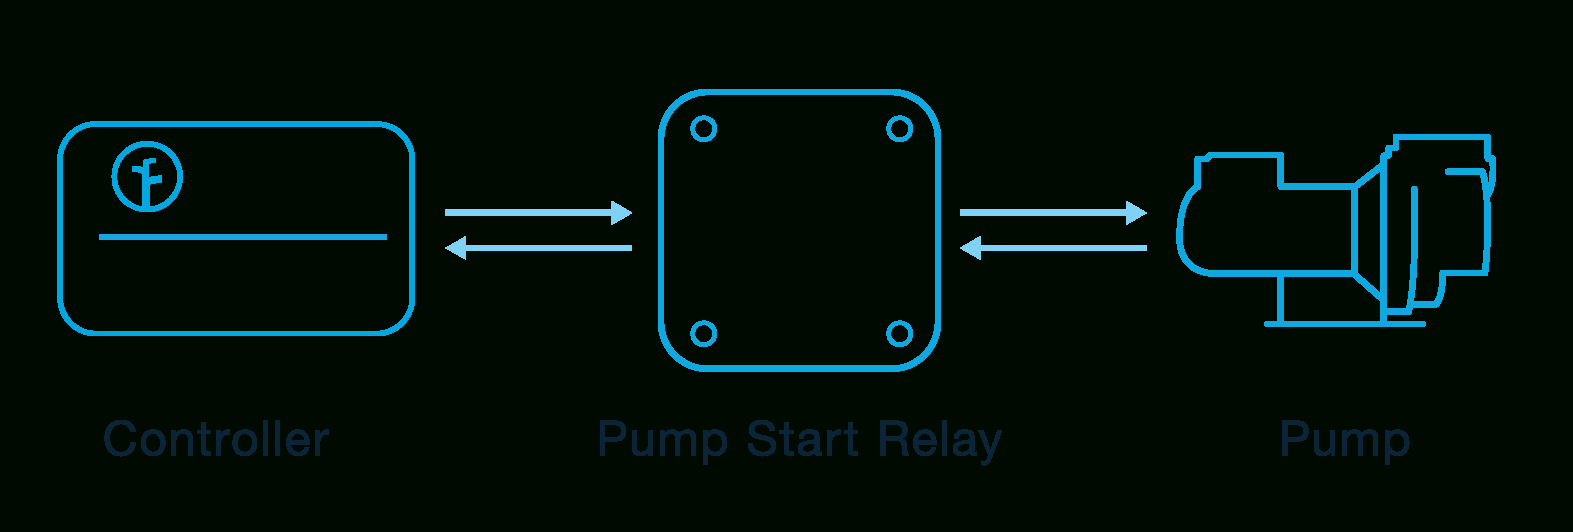 How To Wire Your Controller - Basic And Advanced Wiring – Rachio Support - Pump Start Relay Wiring Diagram